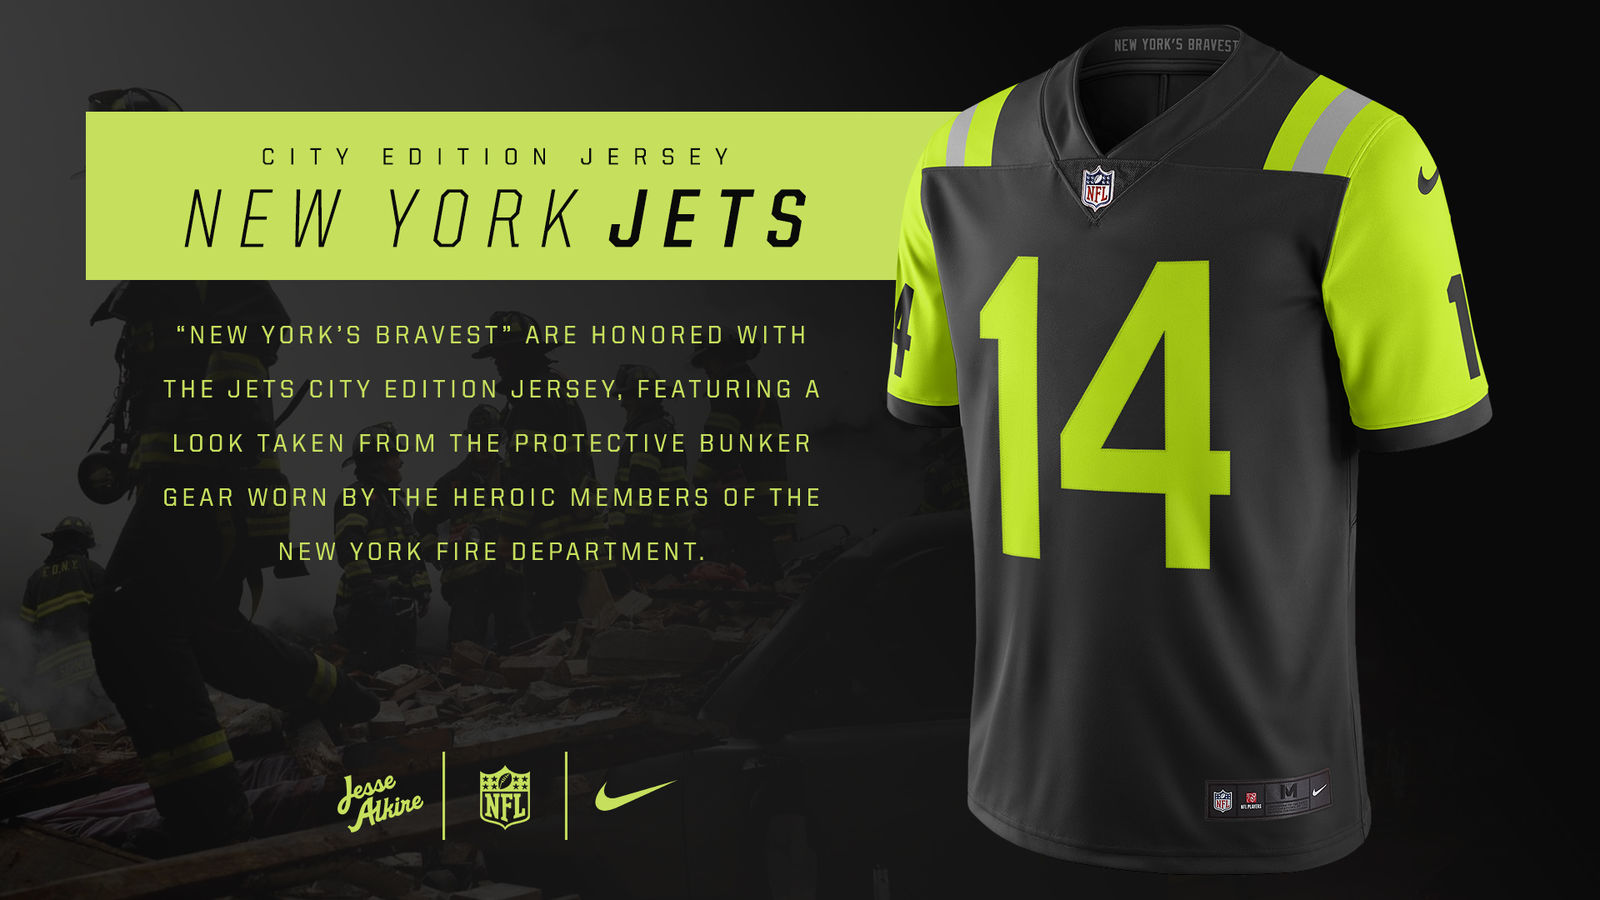 New York Jets<br><p><br>(Jesse Alkire)<br></p>